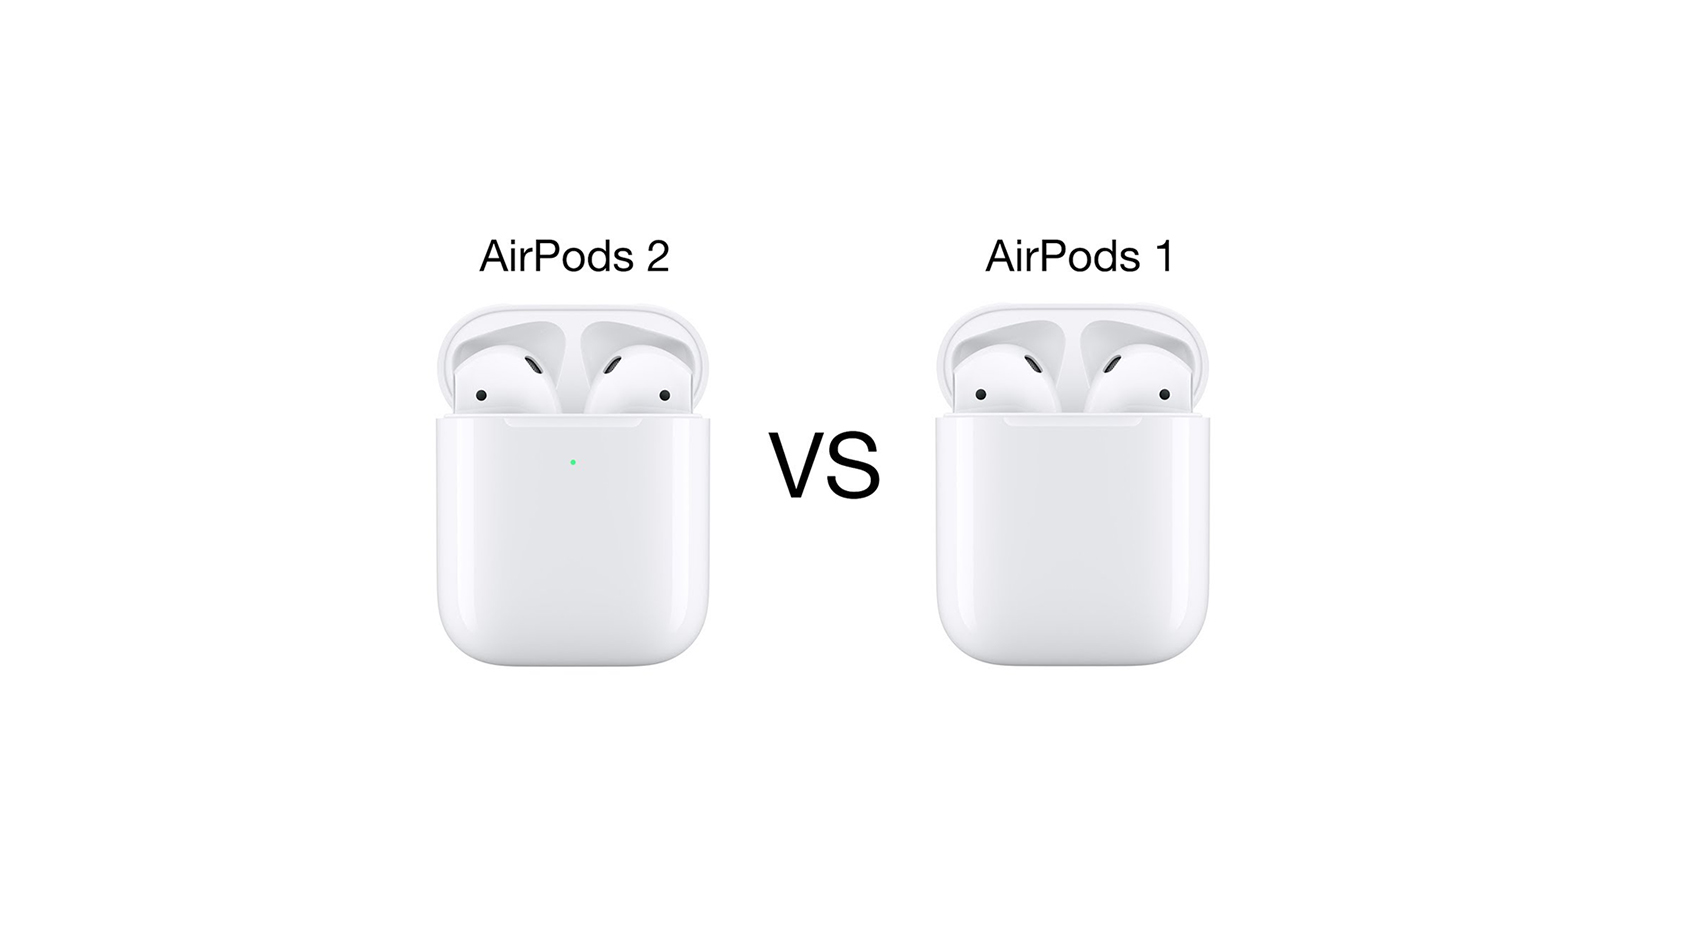 airpods 1 vs airpods 2, new airpods, uued airpods, juhtmevabad kõrvaklapid, apple kõrvaklapid, apple airpods, mobipunkt kõrvaklpaid